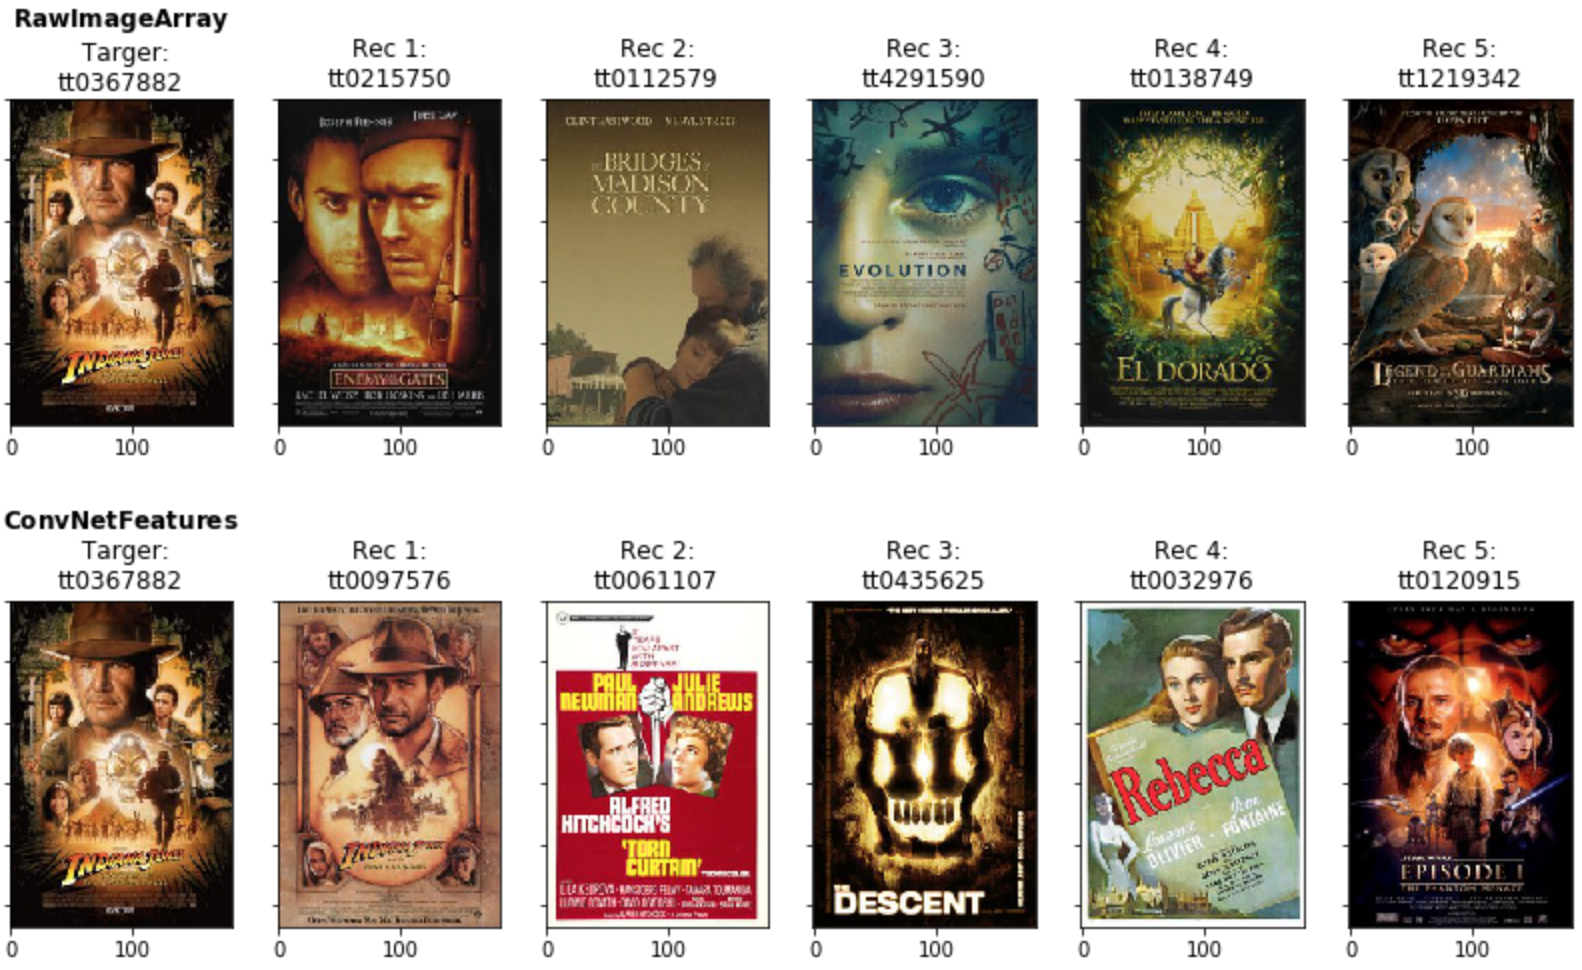 Creating a movie recommender using Convolutional Neural Networks